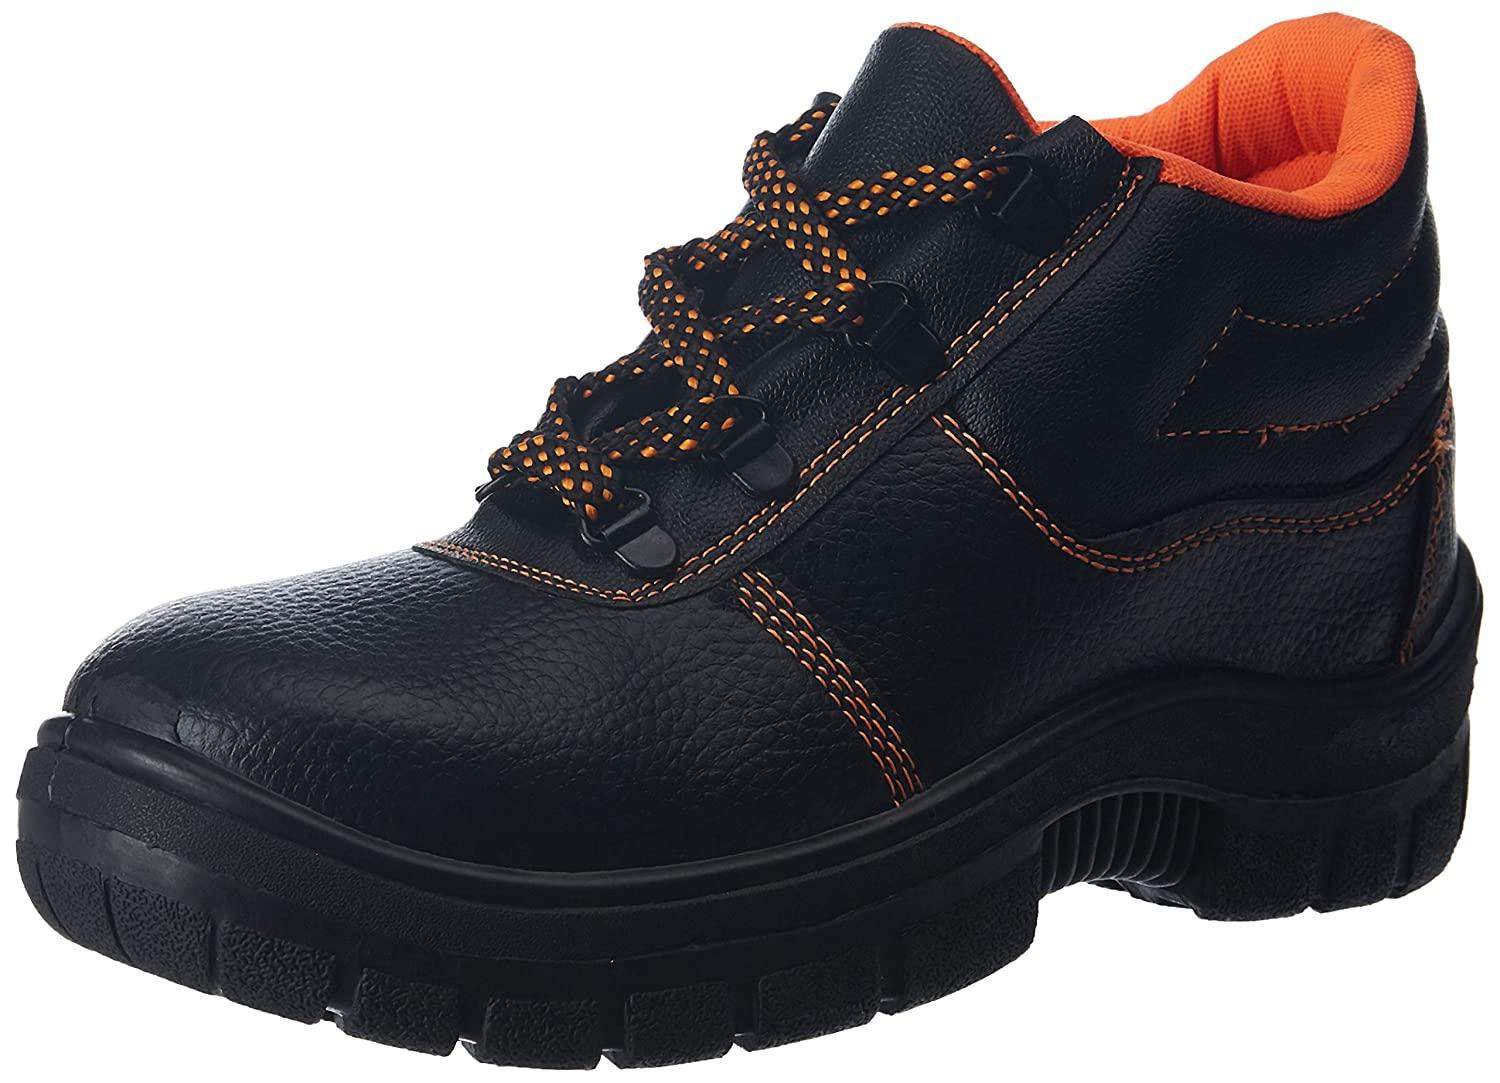 80be87642a75 Safety Shoes  Buy Safety Shoes online at best prices in India ...